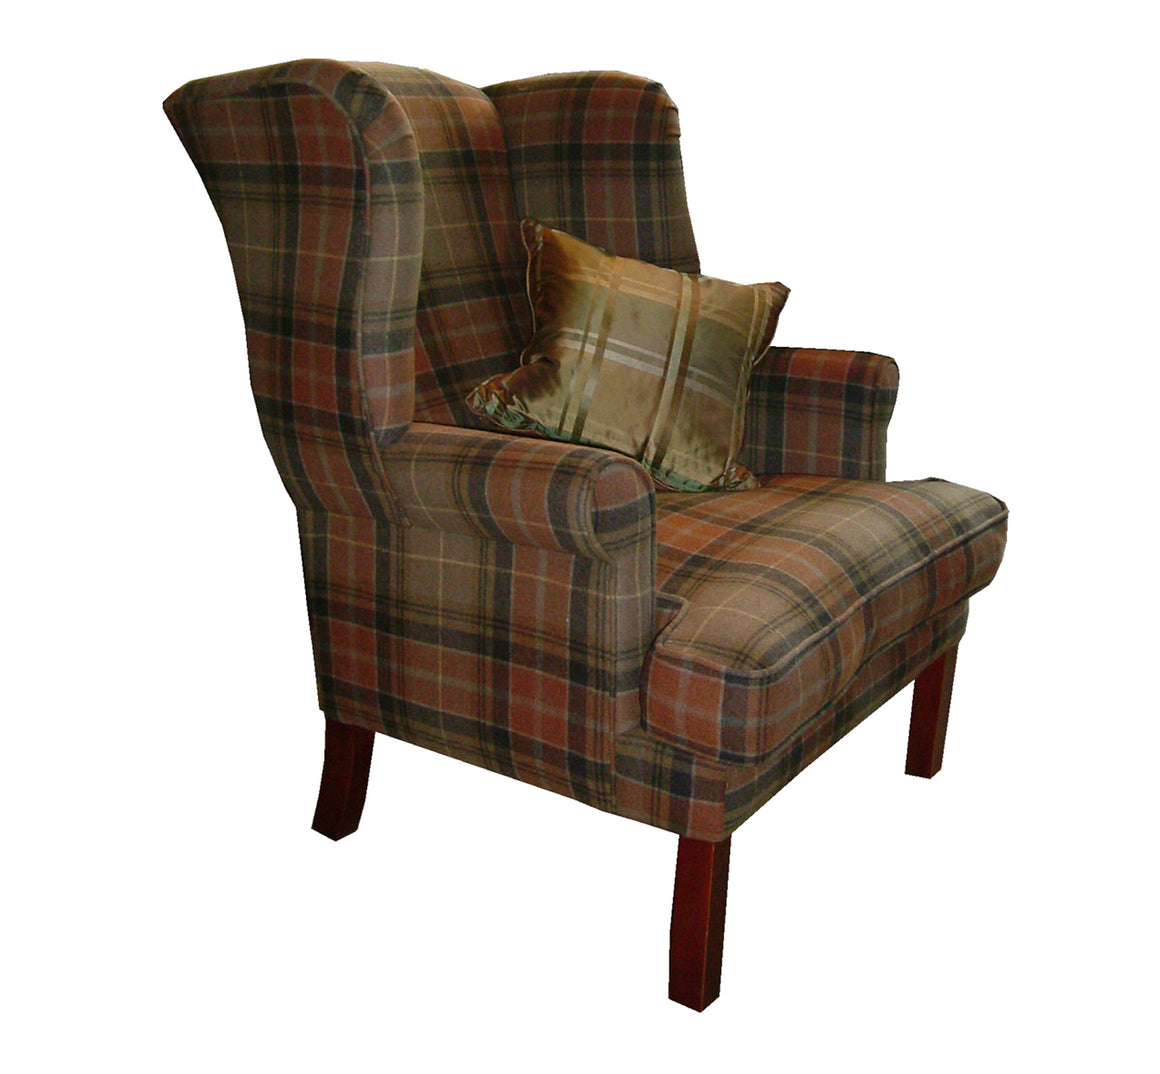 Jodphur Wing Chair in Lennox BUY ONE, GET ONE FREE